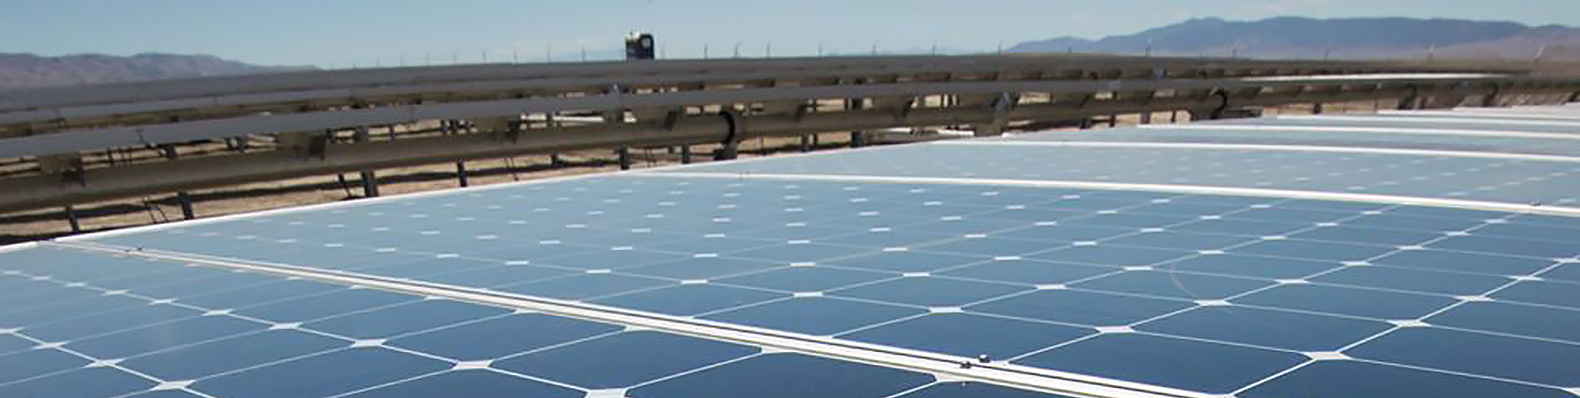 SunPower nabs record for world's most efficient rooftop solar panel